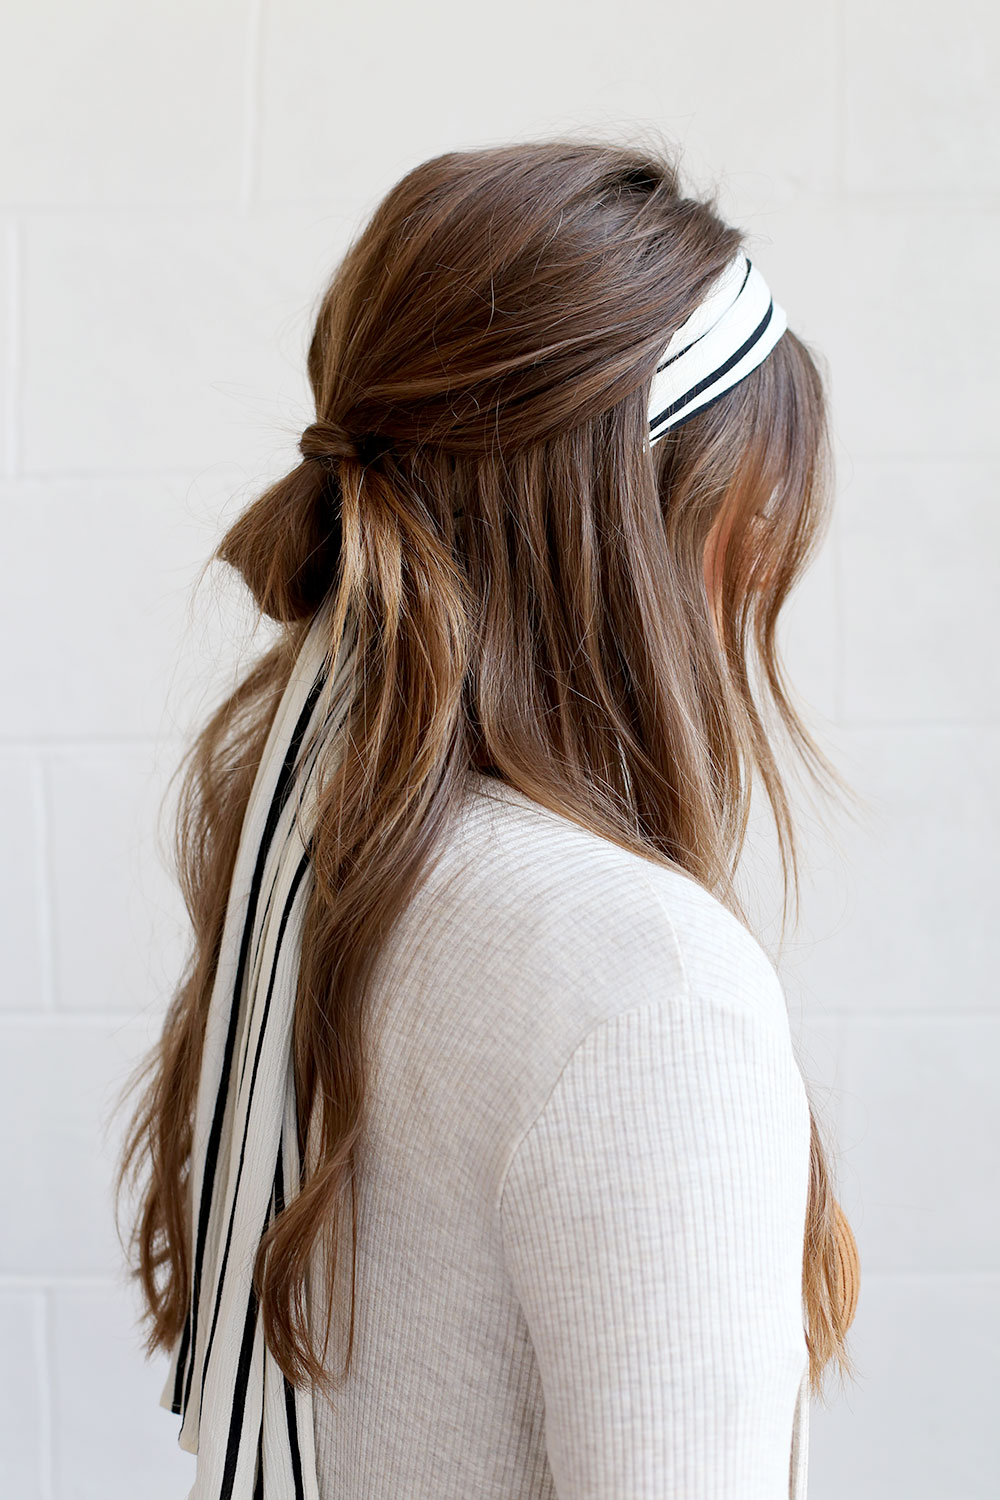 How To Wear It The Hair Scarf Trend Lulus Com Fashion Blog